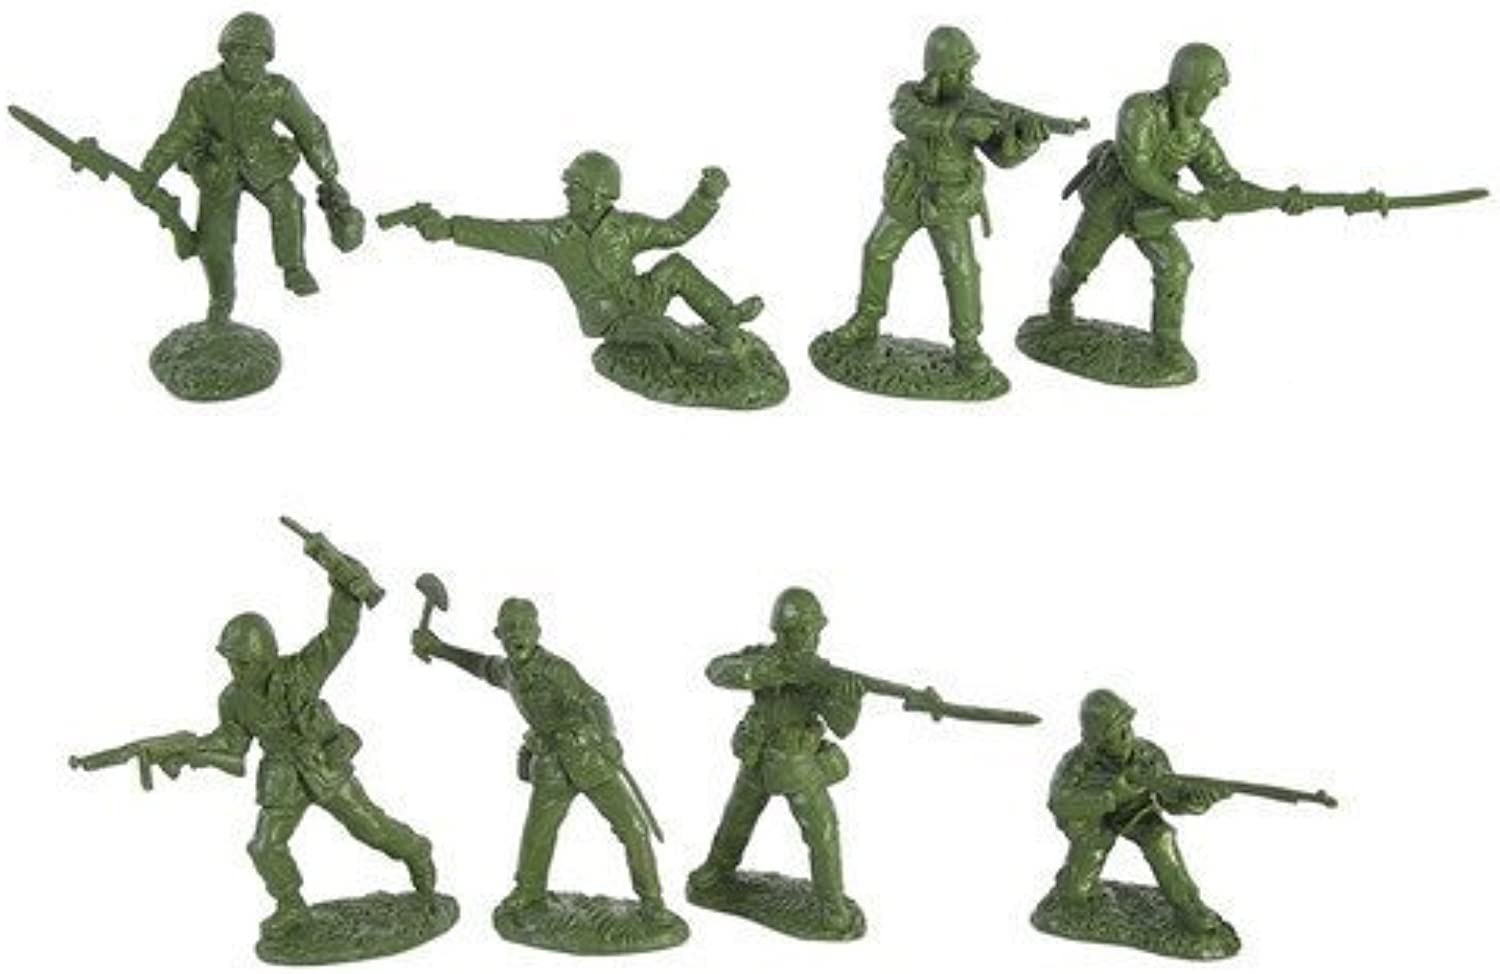 WWII United States Marines Plastic Green Army Men  16 piece set of 54mm Figures  1 32 scale by Toy Soldiers of San Diego